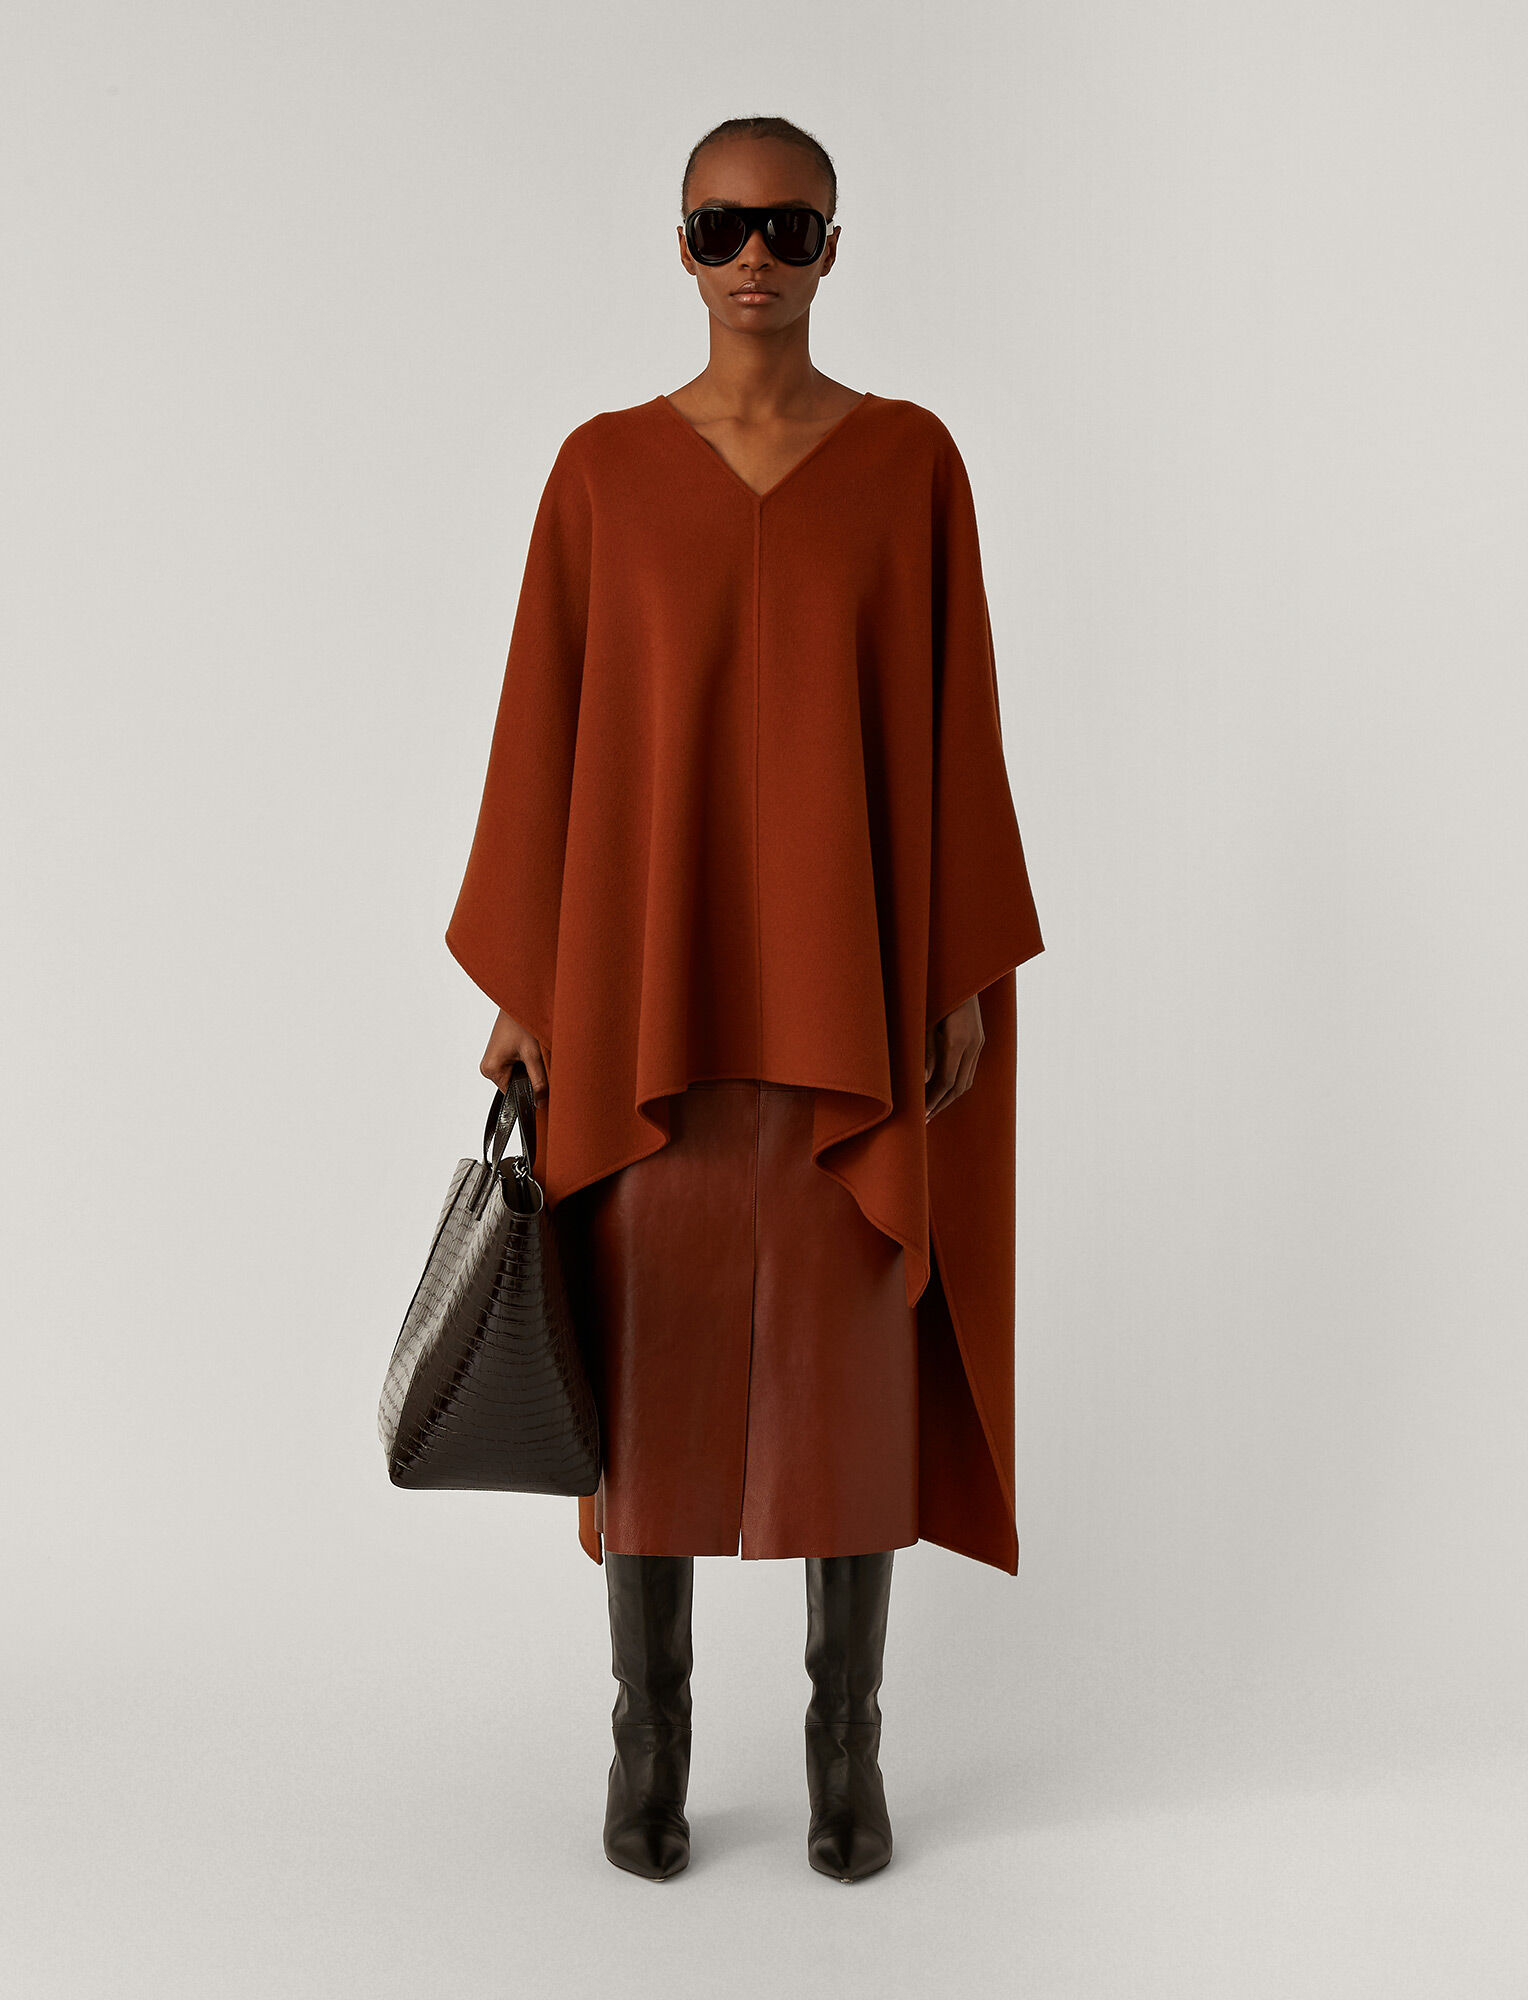 Joseph, Ciela Double Face Cashmere Coat, in Fox